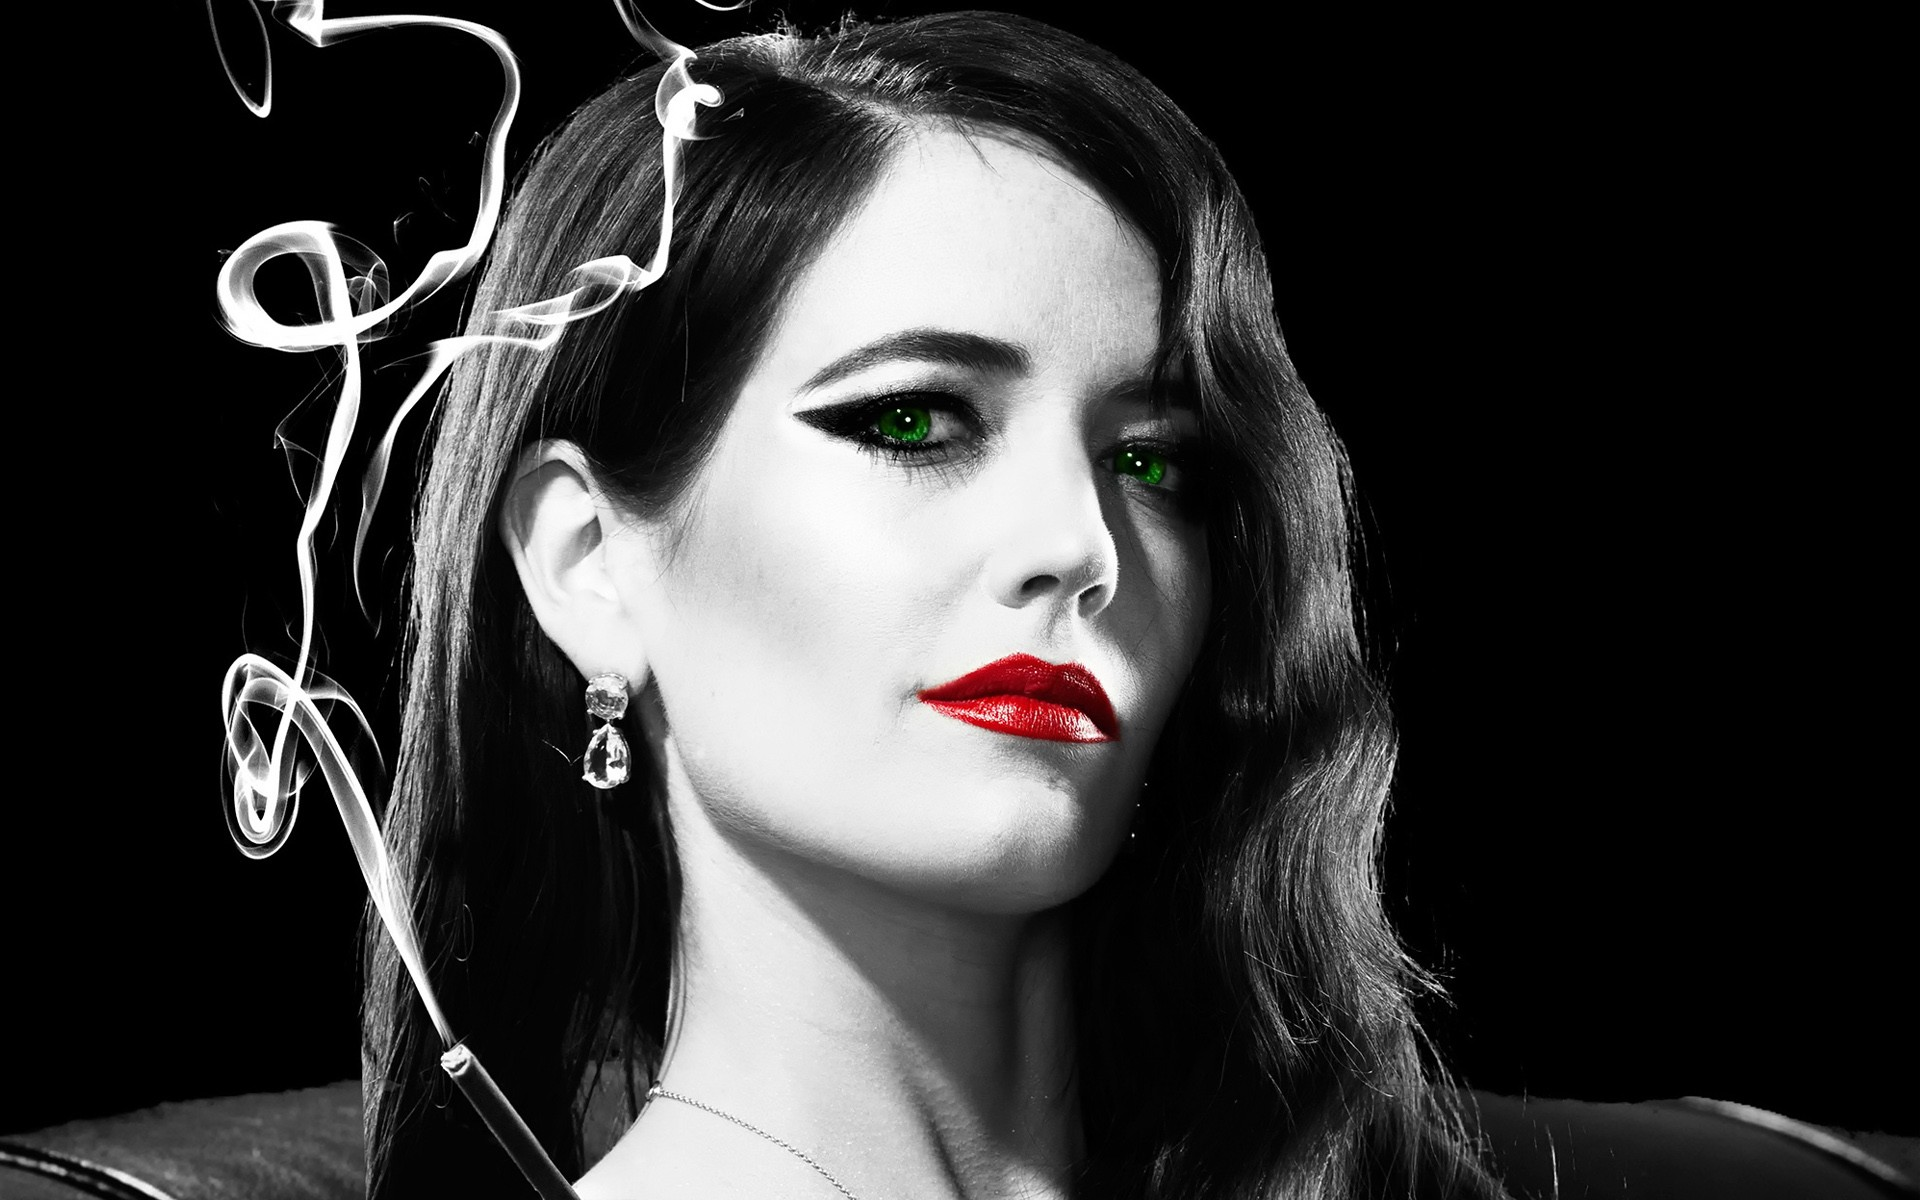 eva green in sin city movie, hd movies, 4k wallpapers, images